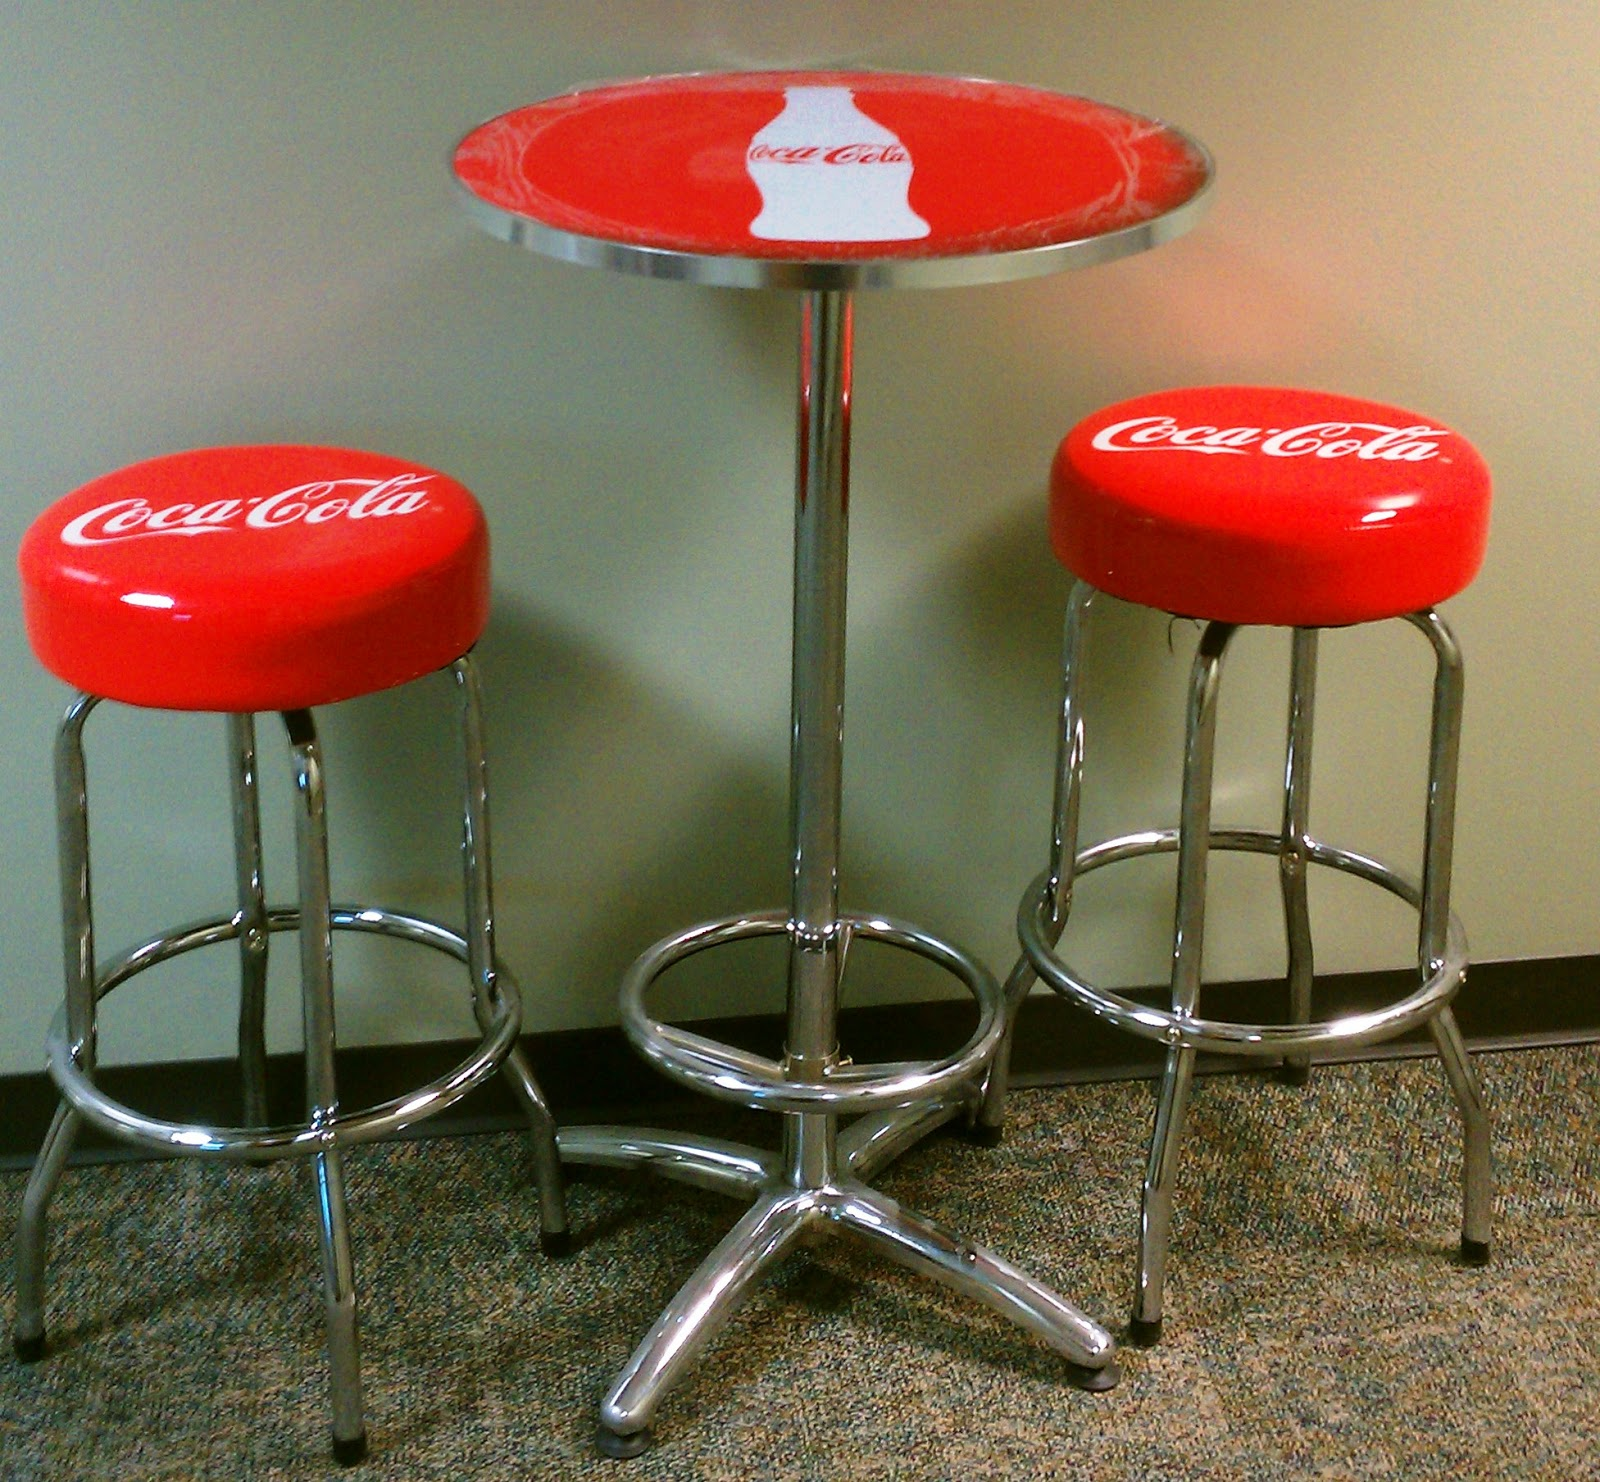 Swire Coca Cola Usa Auction Blog Auction Will Now End